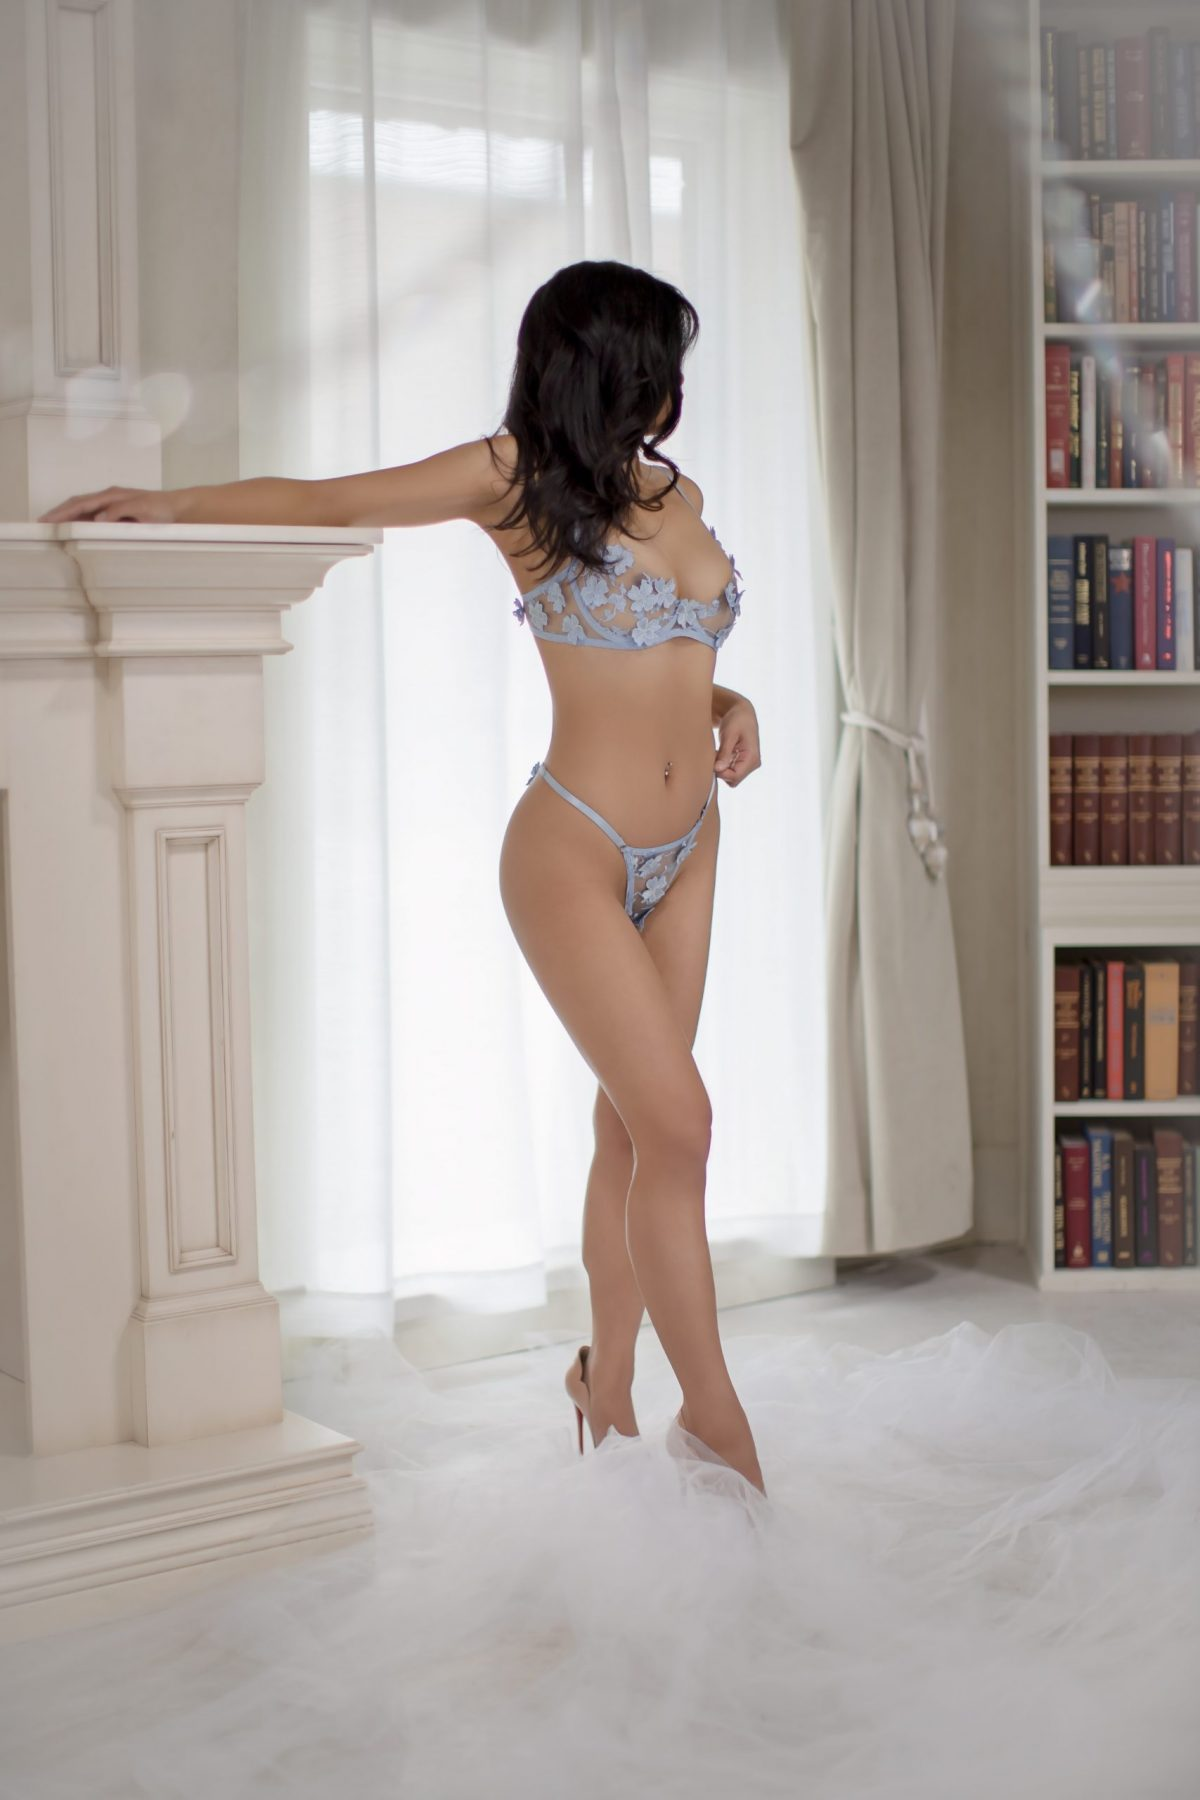 Toronto escorts companion upscale Bria Interests Duo Disability-friendly Age Young Figure Curvy Petite Breasts Natural Hair Raven-Haired Ethnicity Asian Tattoos Small New Photos